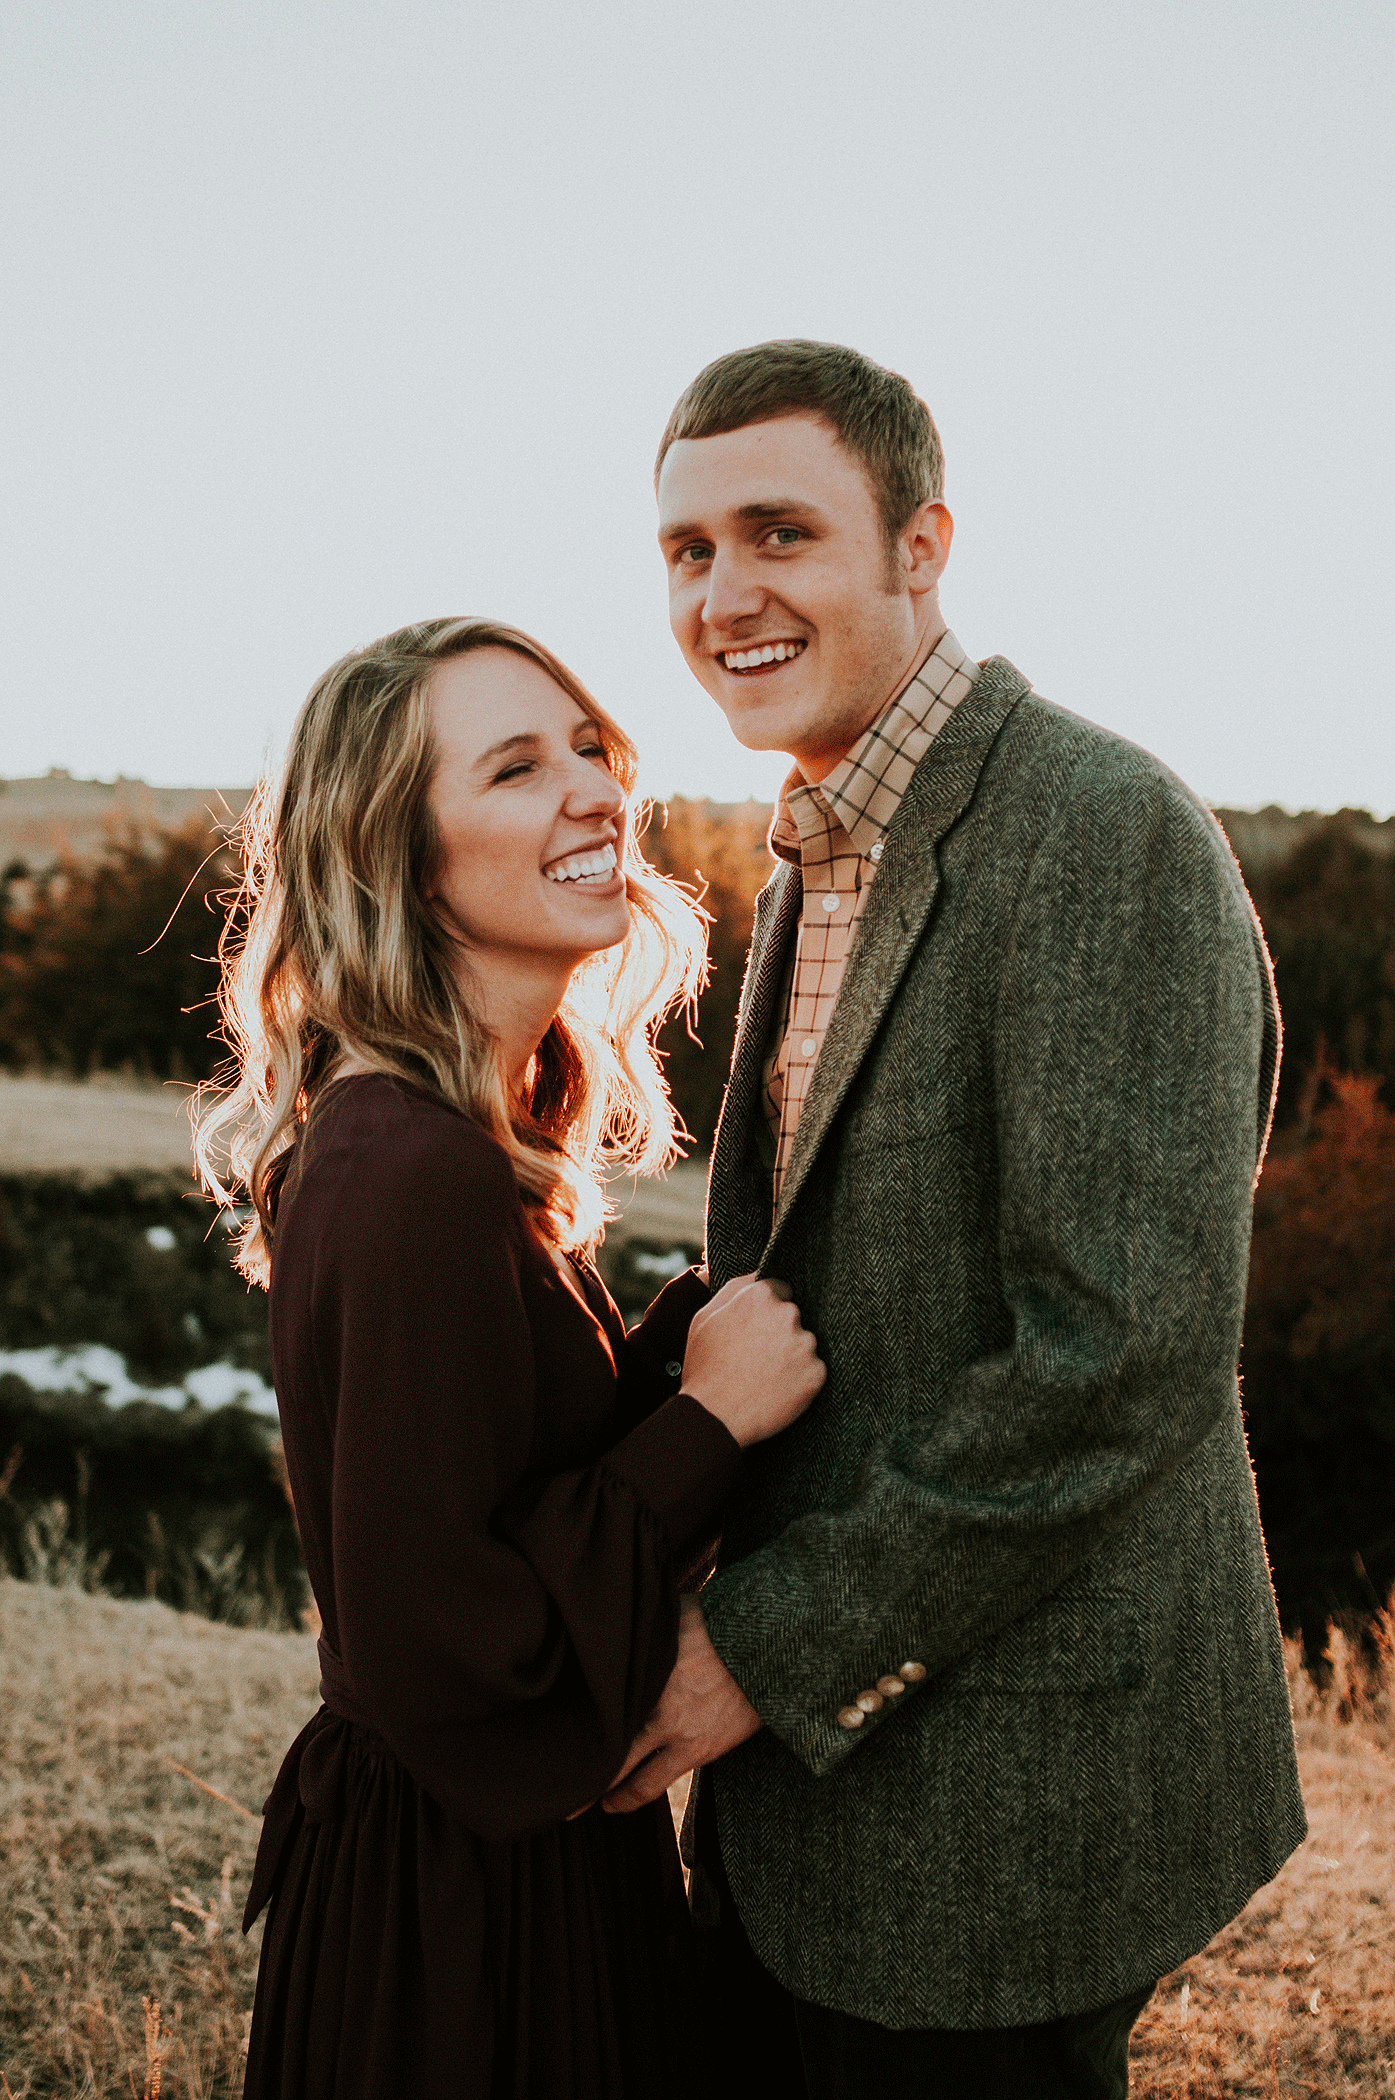 kaylie-sirek-nebraska-wedding-engagement-photographer-photography-grand-island-kearney-hastings-lincoln-50.png